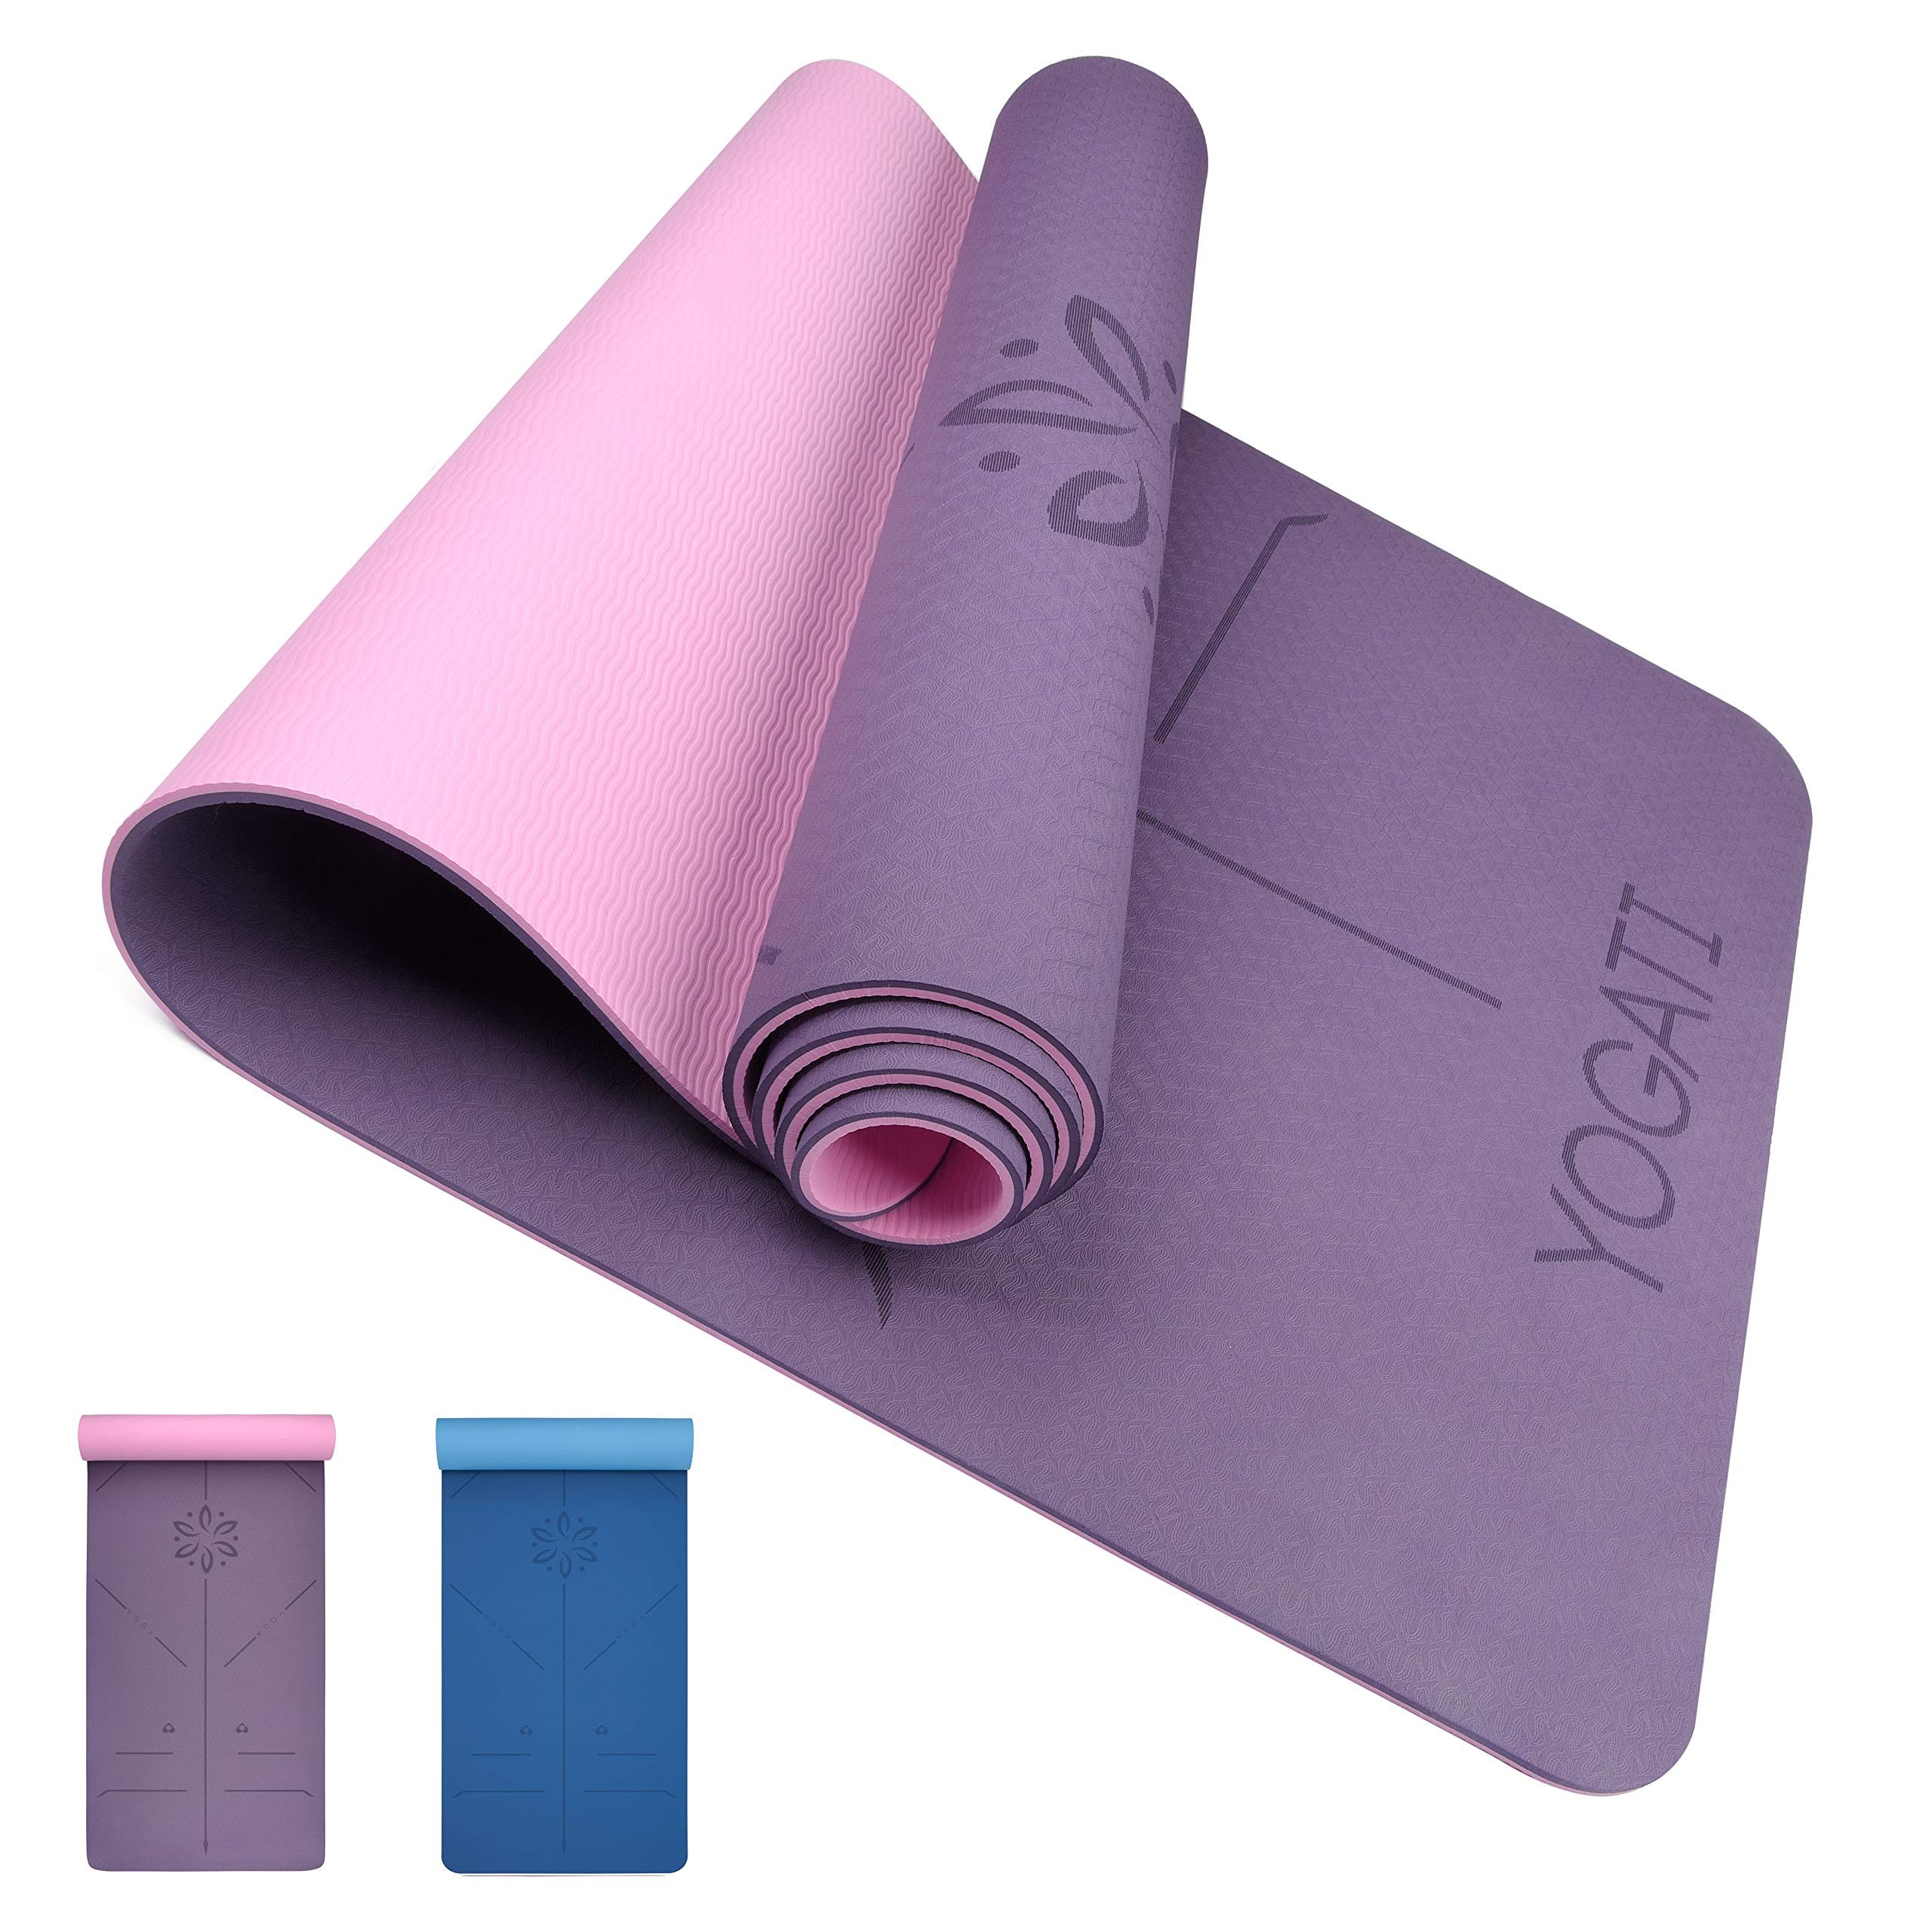 Yogati Yoga Mat With Body Alignment Lines Yoga Mats With Carry Strap Perfect For Pilates And Fitness Workout Eco Friendly Non Slip Thick Yoga Mats For Women And Men Yoga Matt